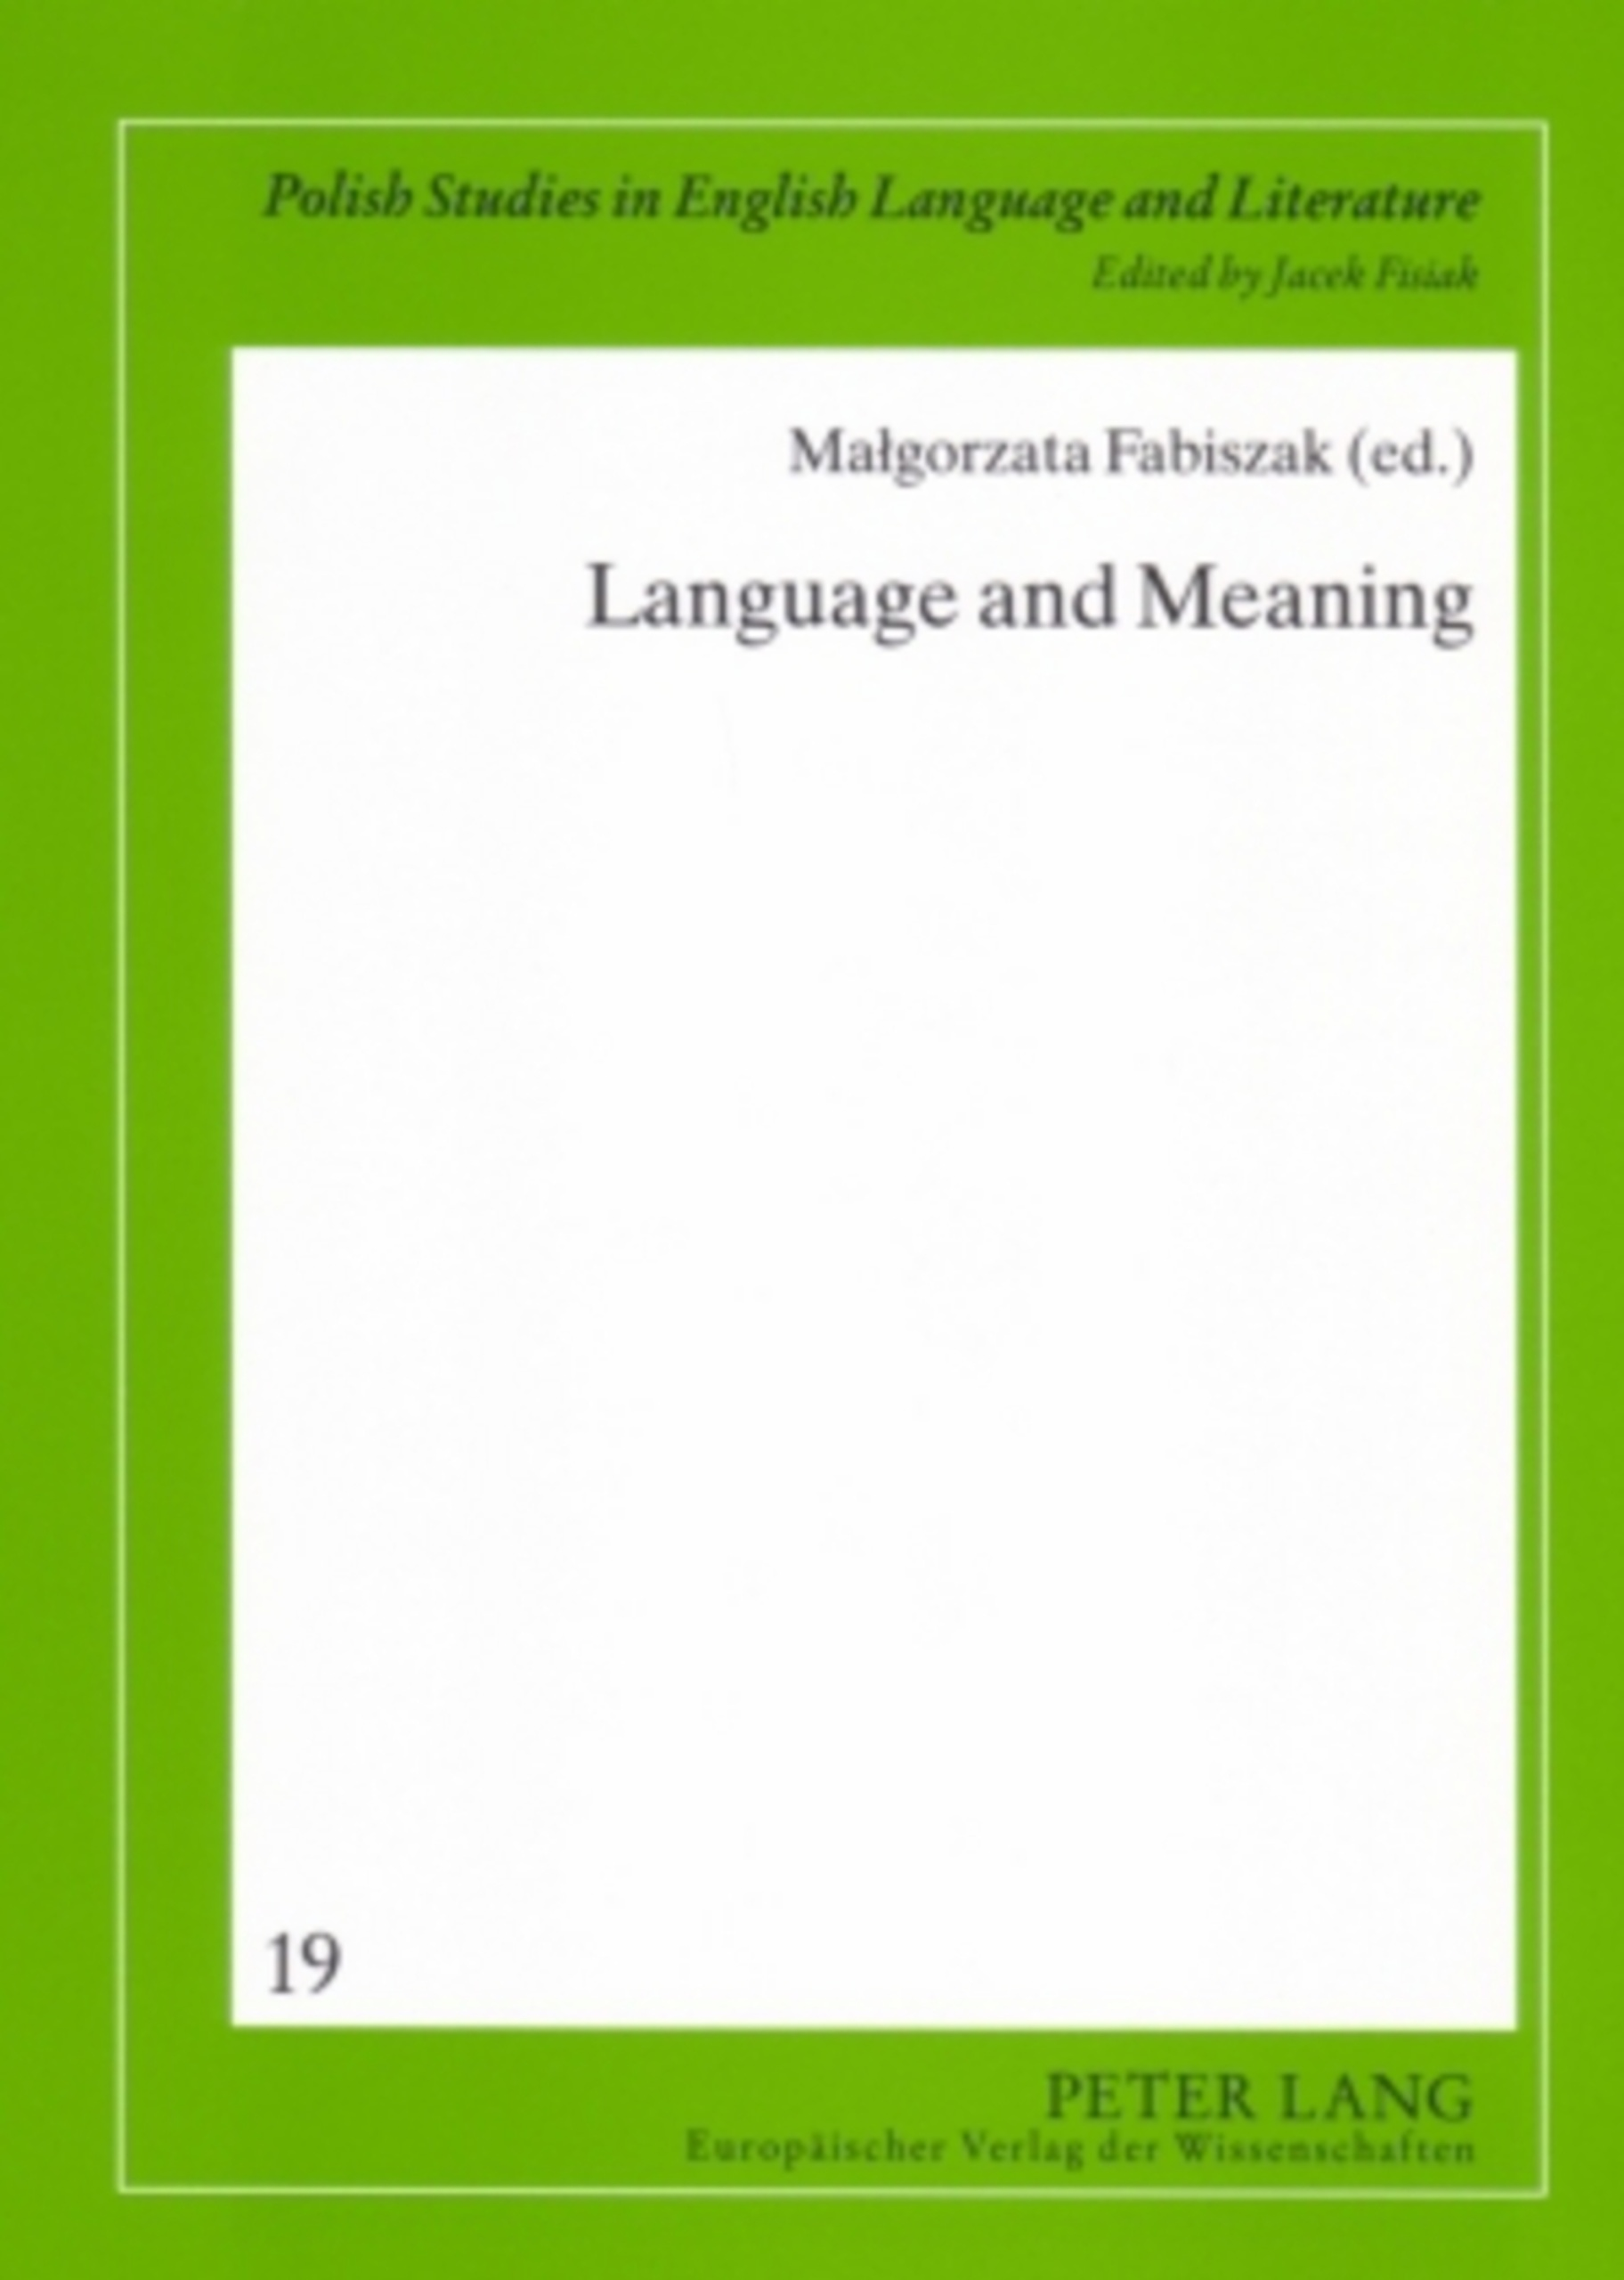 Title: Language and Meaning